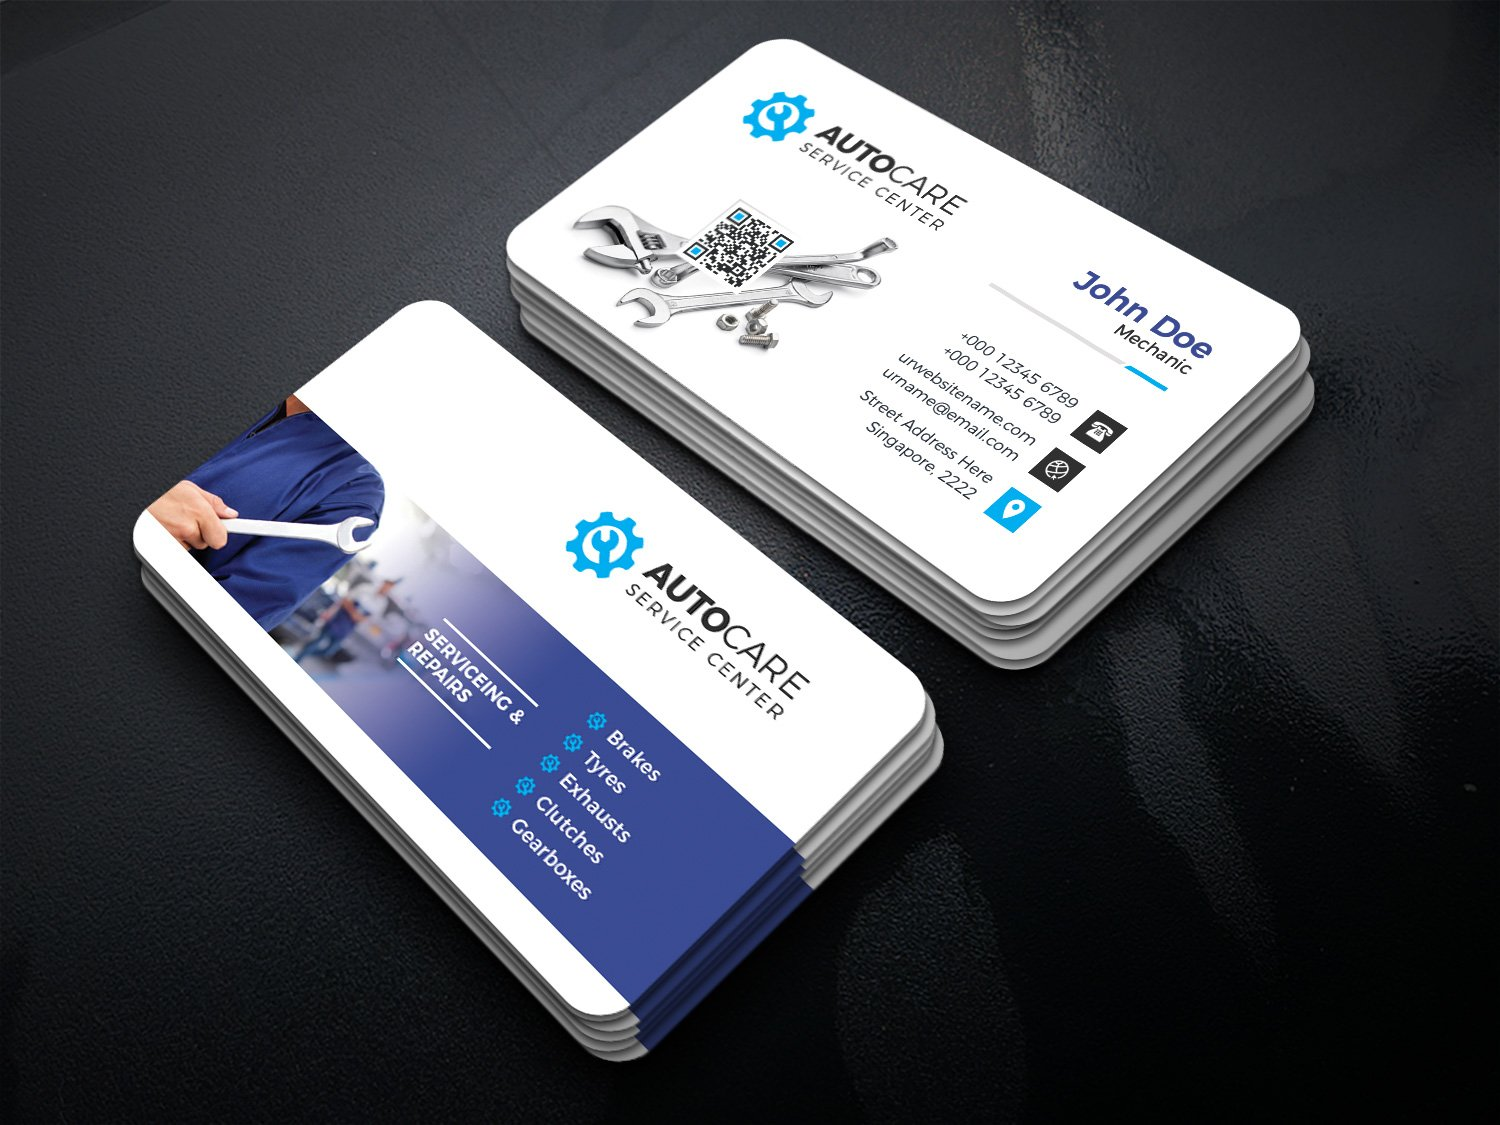 Car Service Business Card ~ Business Card Templates ~ Creative Market